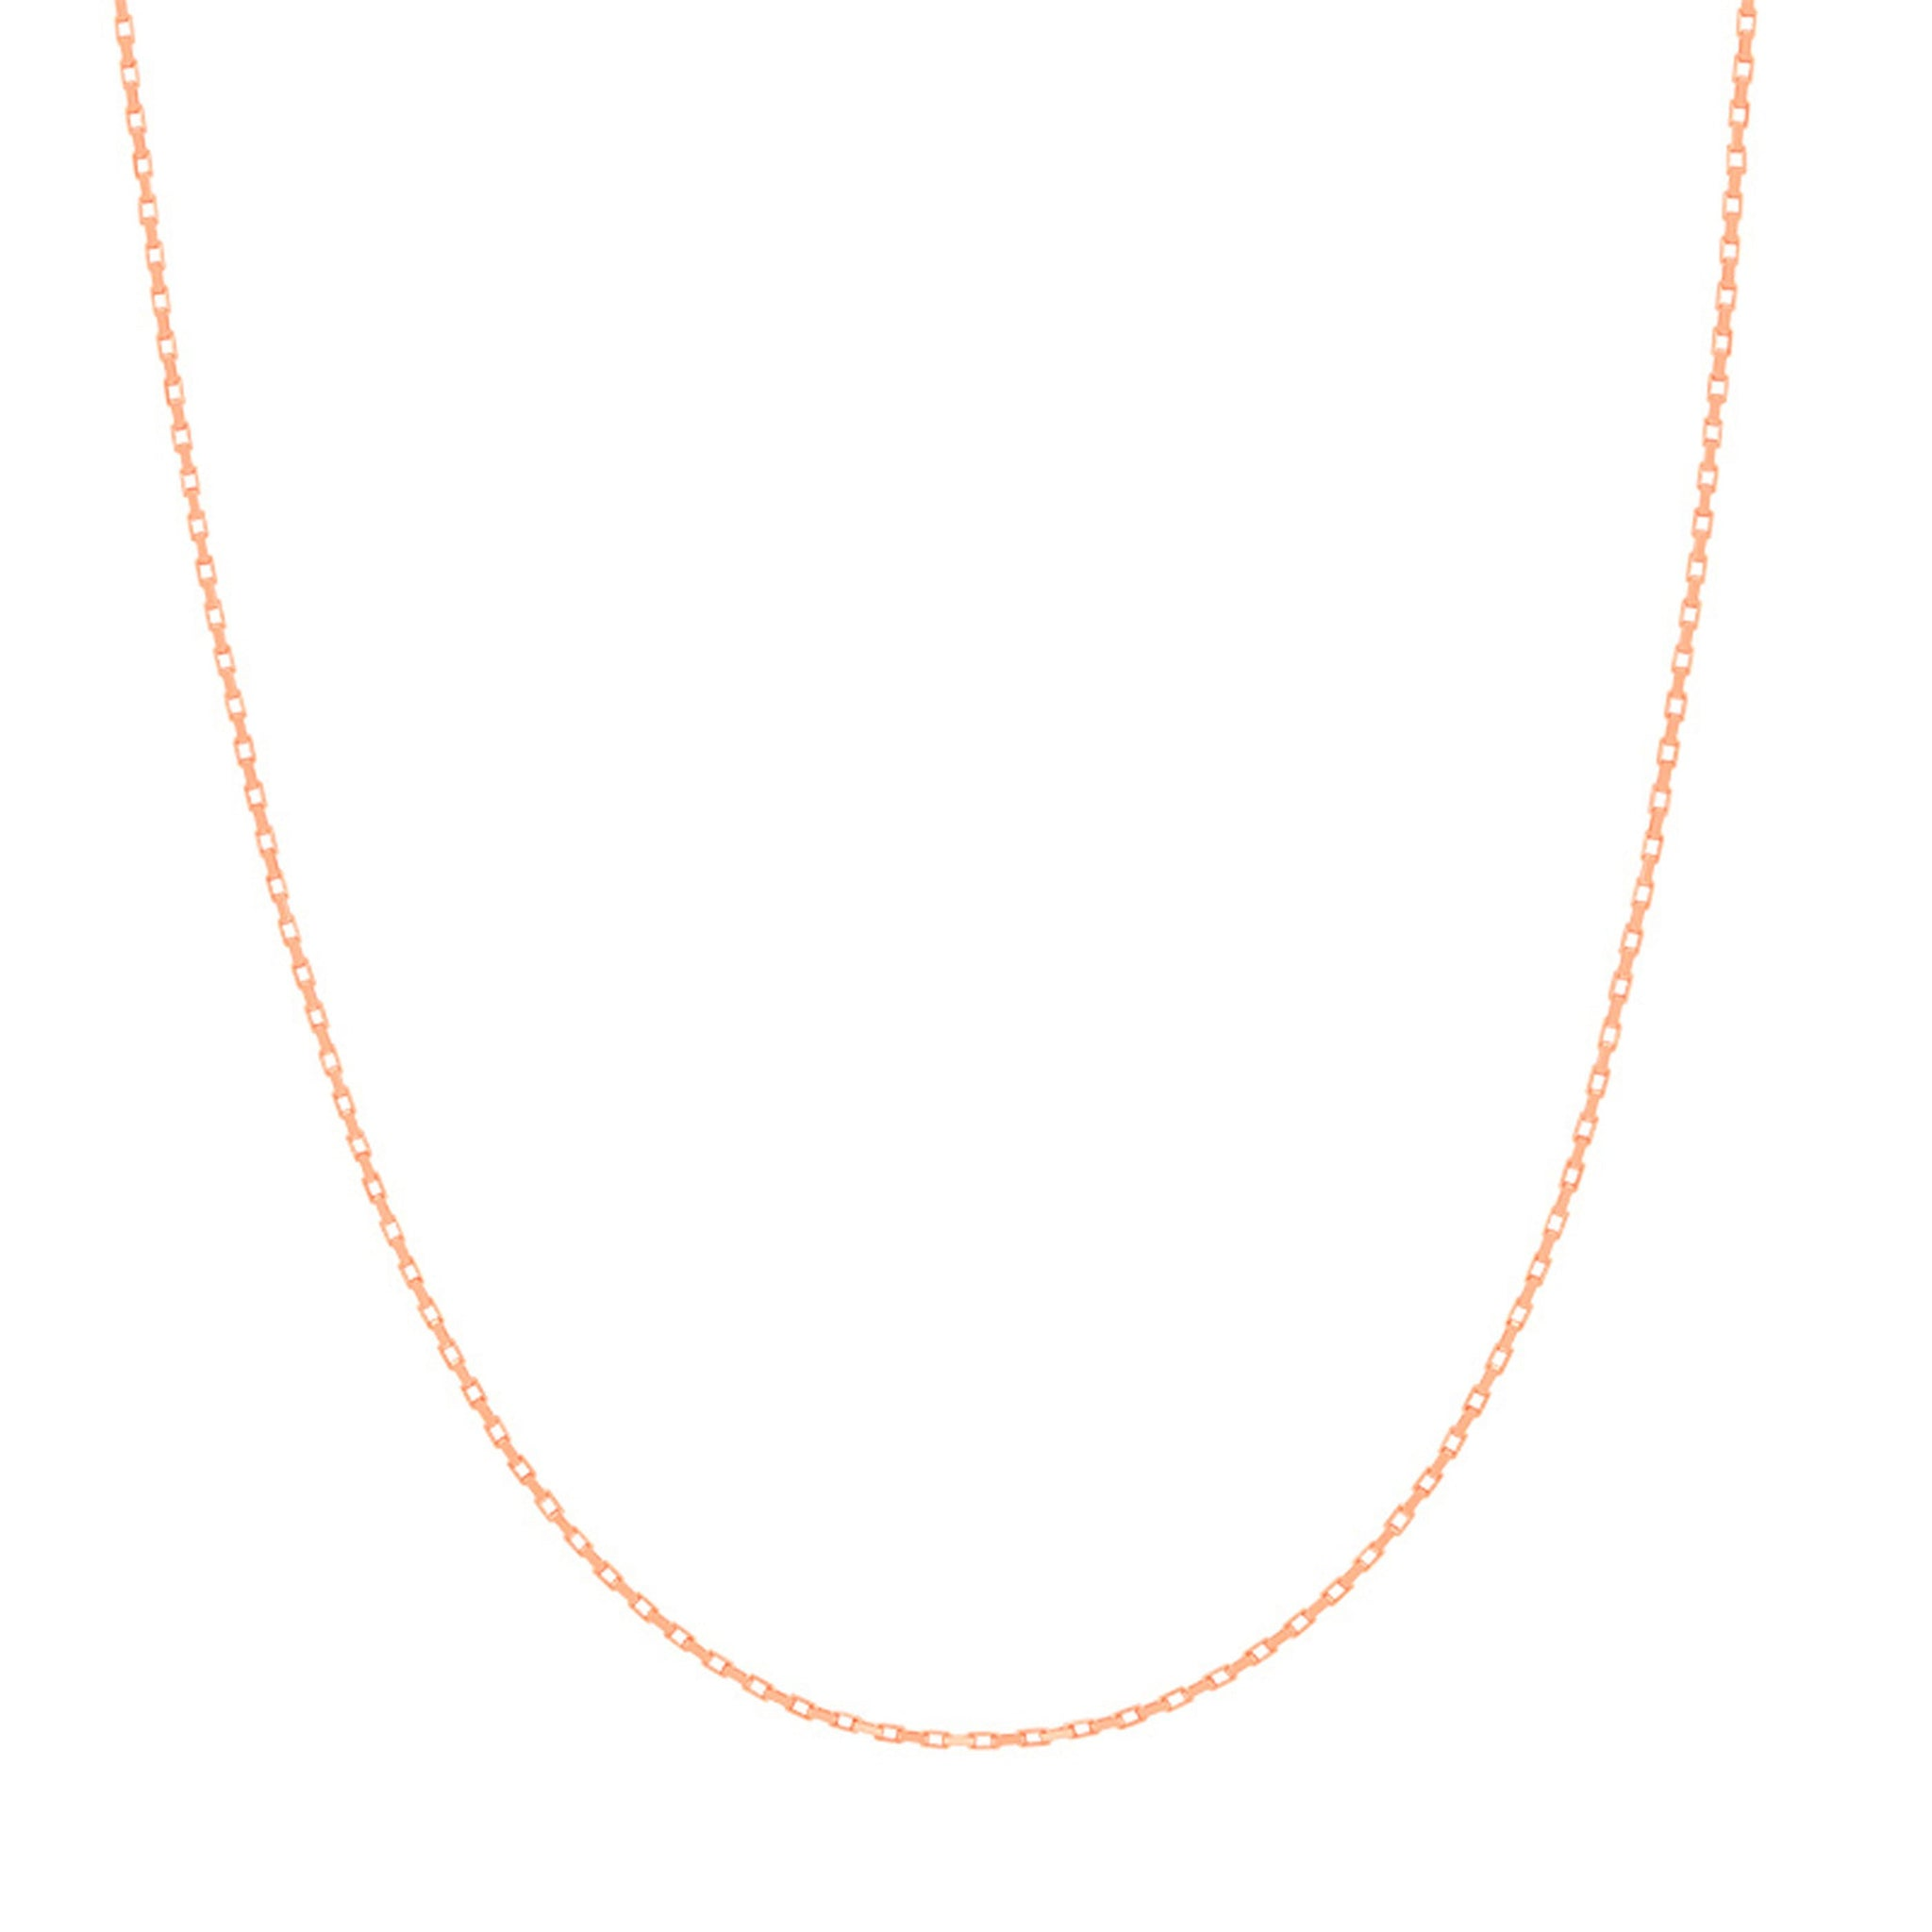 Rectangular Link Necklace Chain in Rose Gold